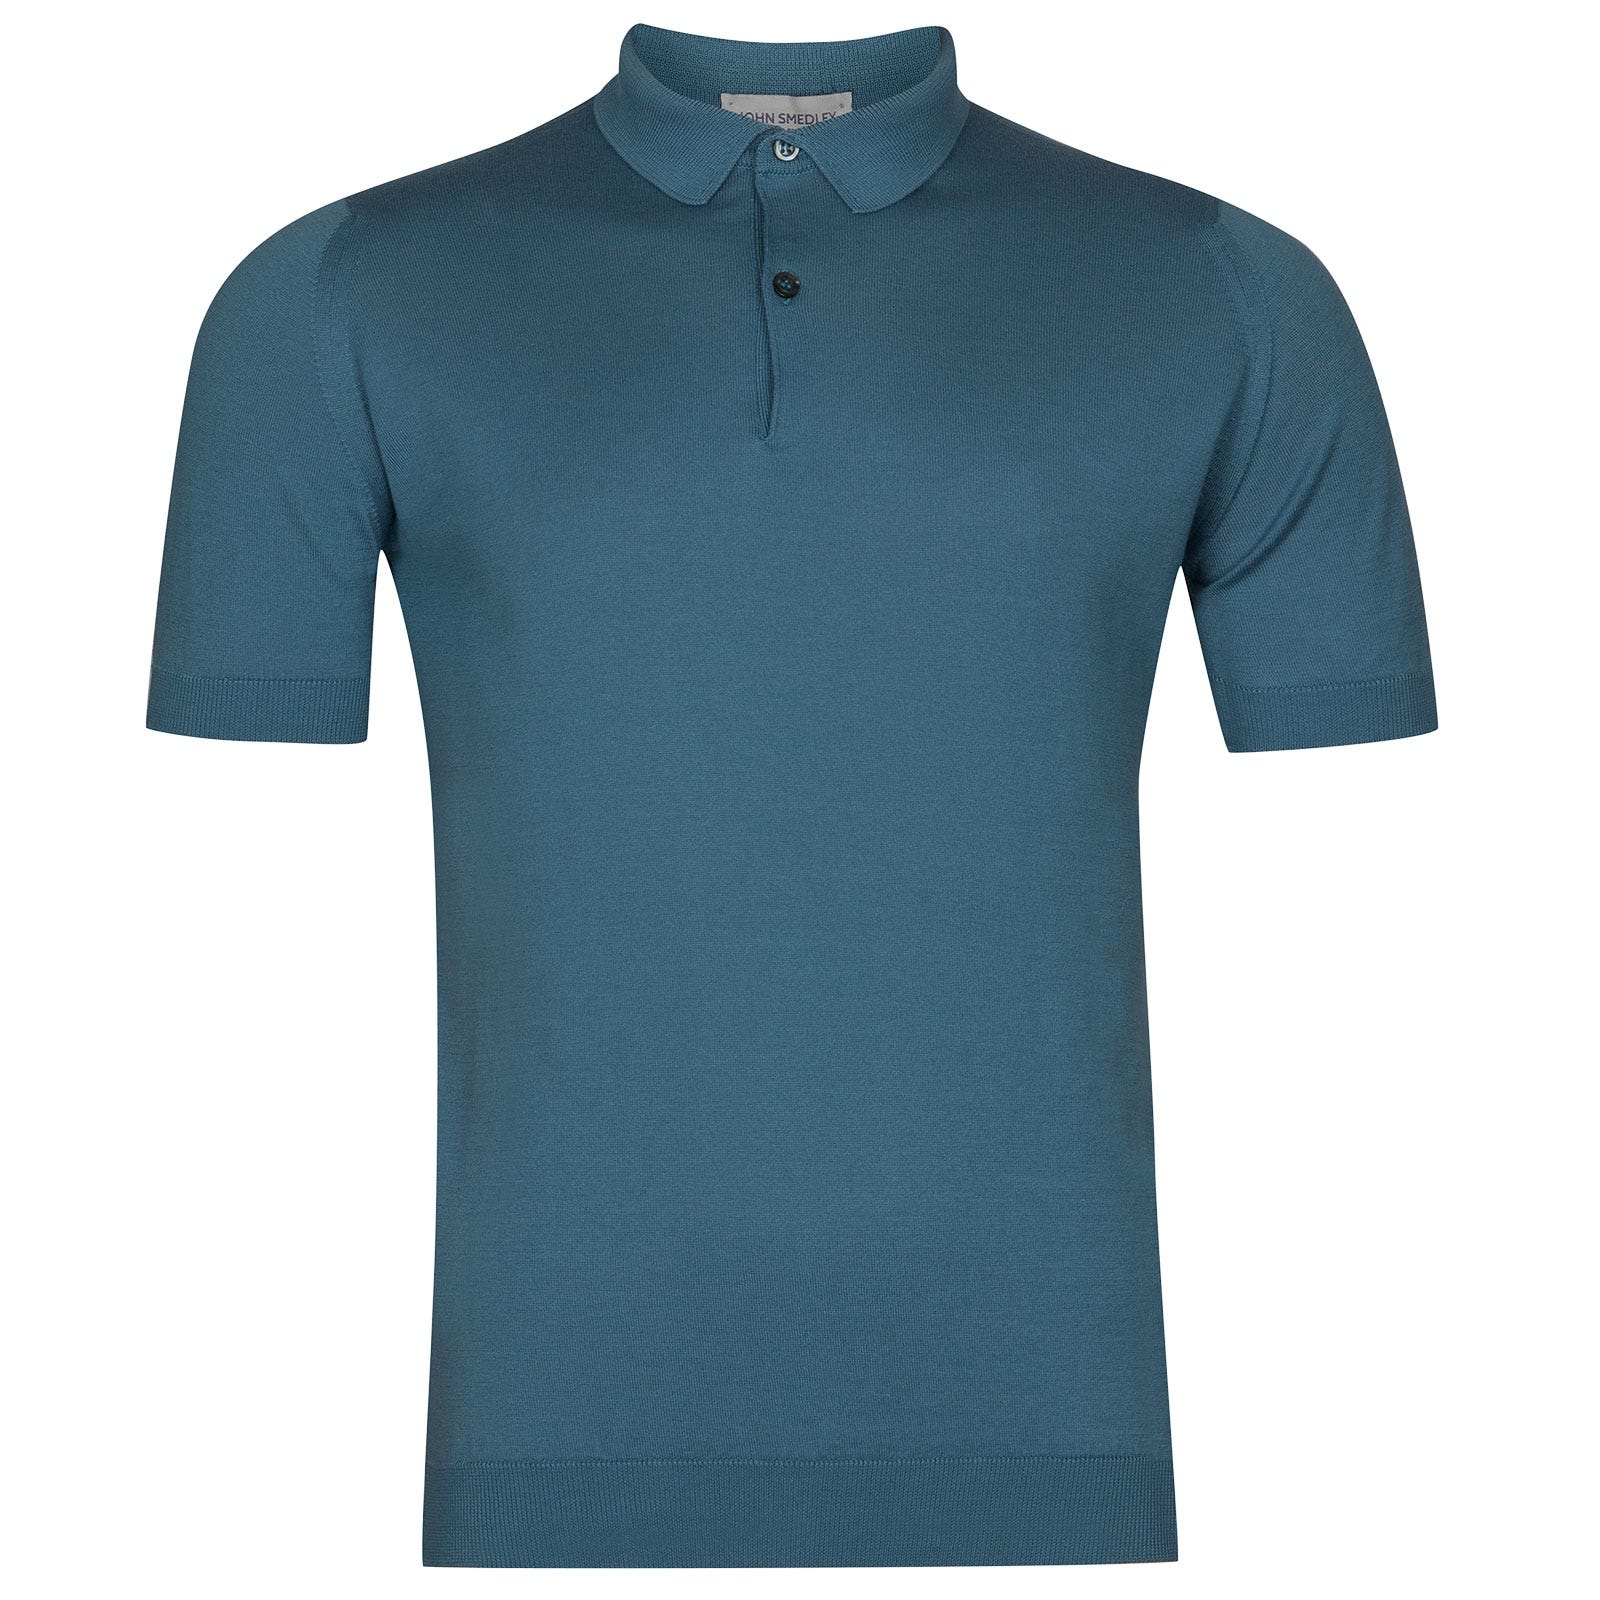 John Smedley Rhodes Sea Island Cotton Shirt in Bias Blue-M